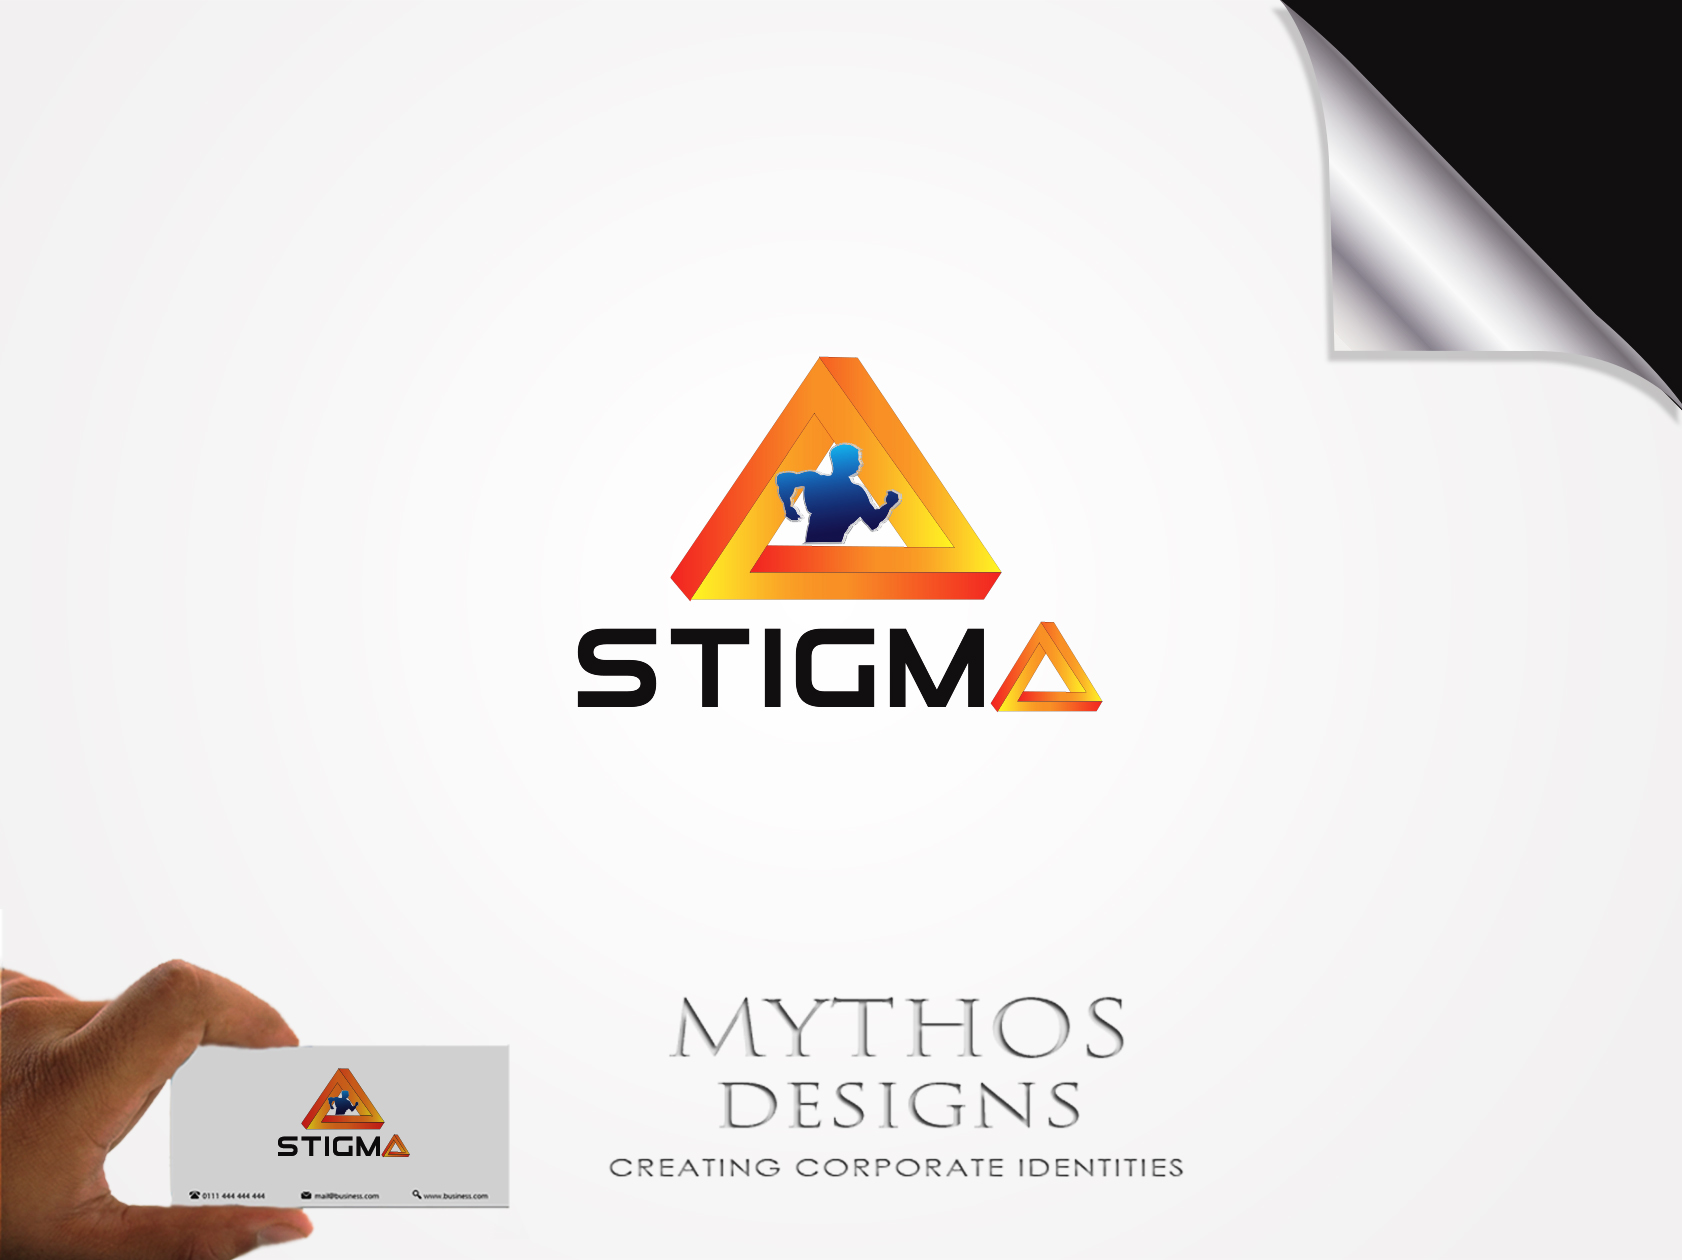 Logo Design by Mythos Designs - Entry No. 15 in the Logo Design Contest Creative Logo Design for STIGMA.